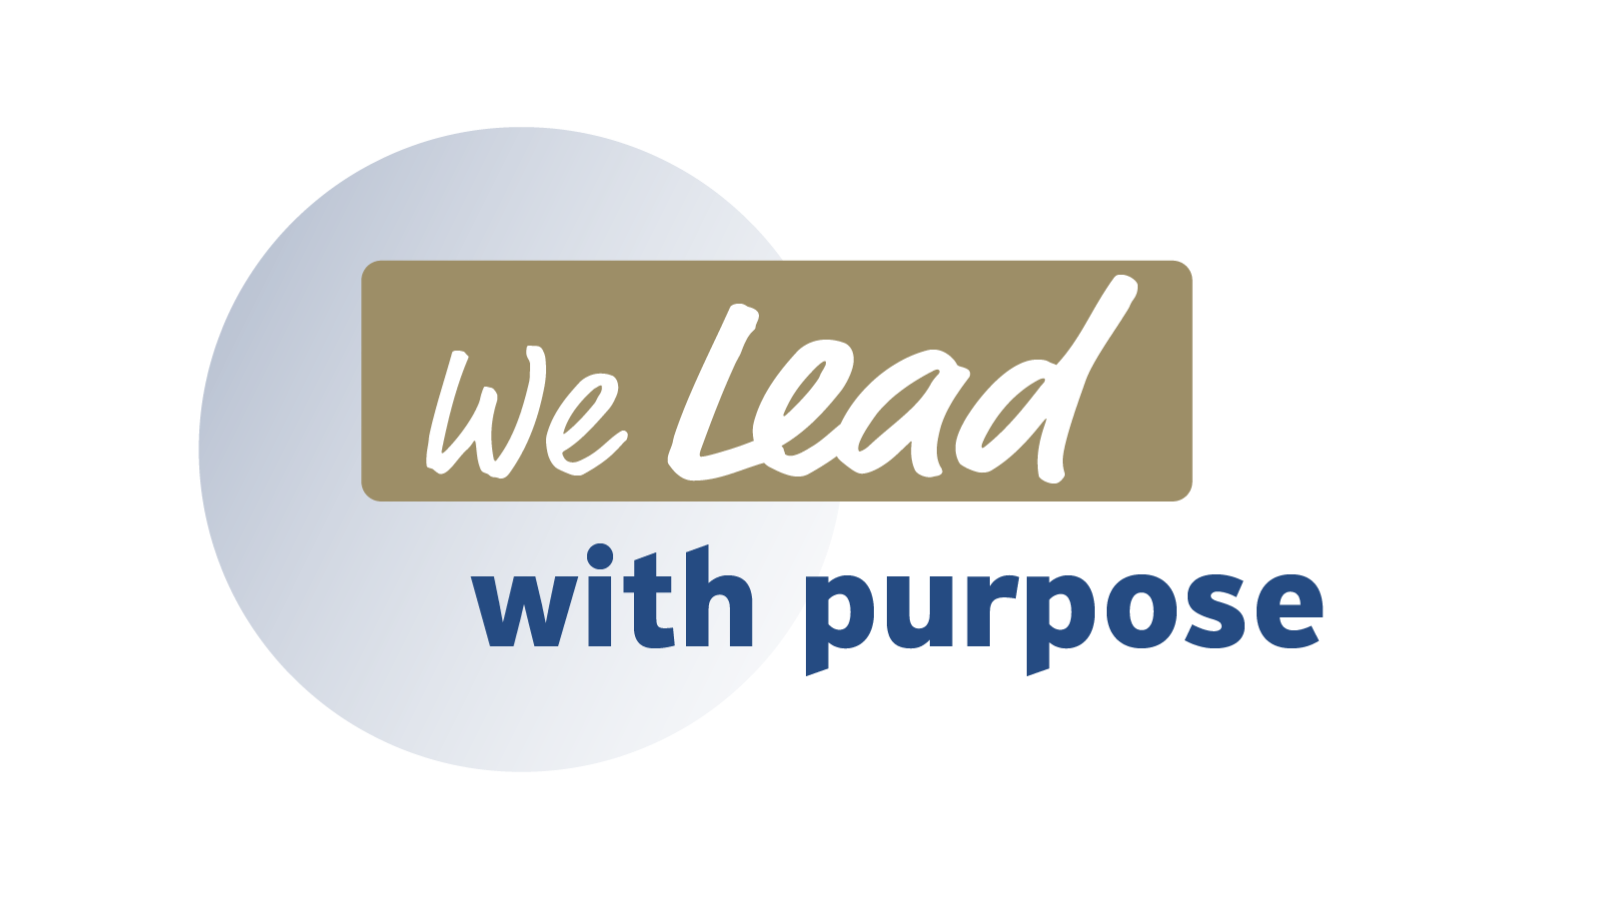 We Lead with Purpose